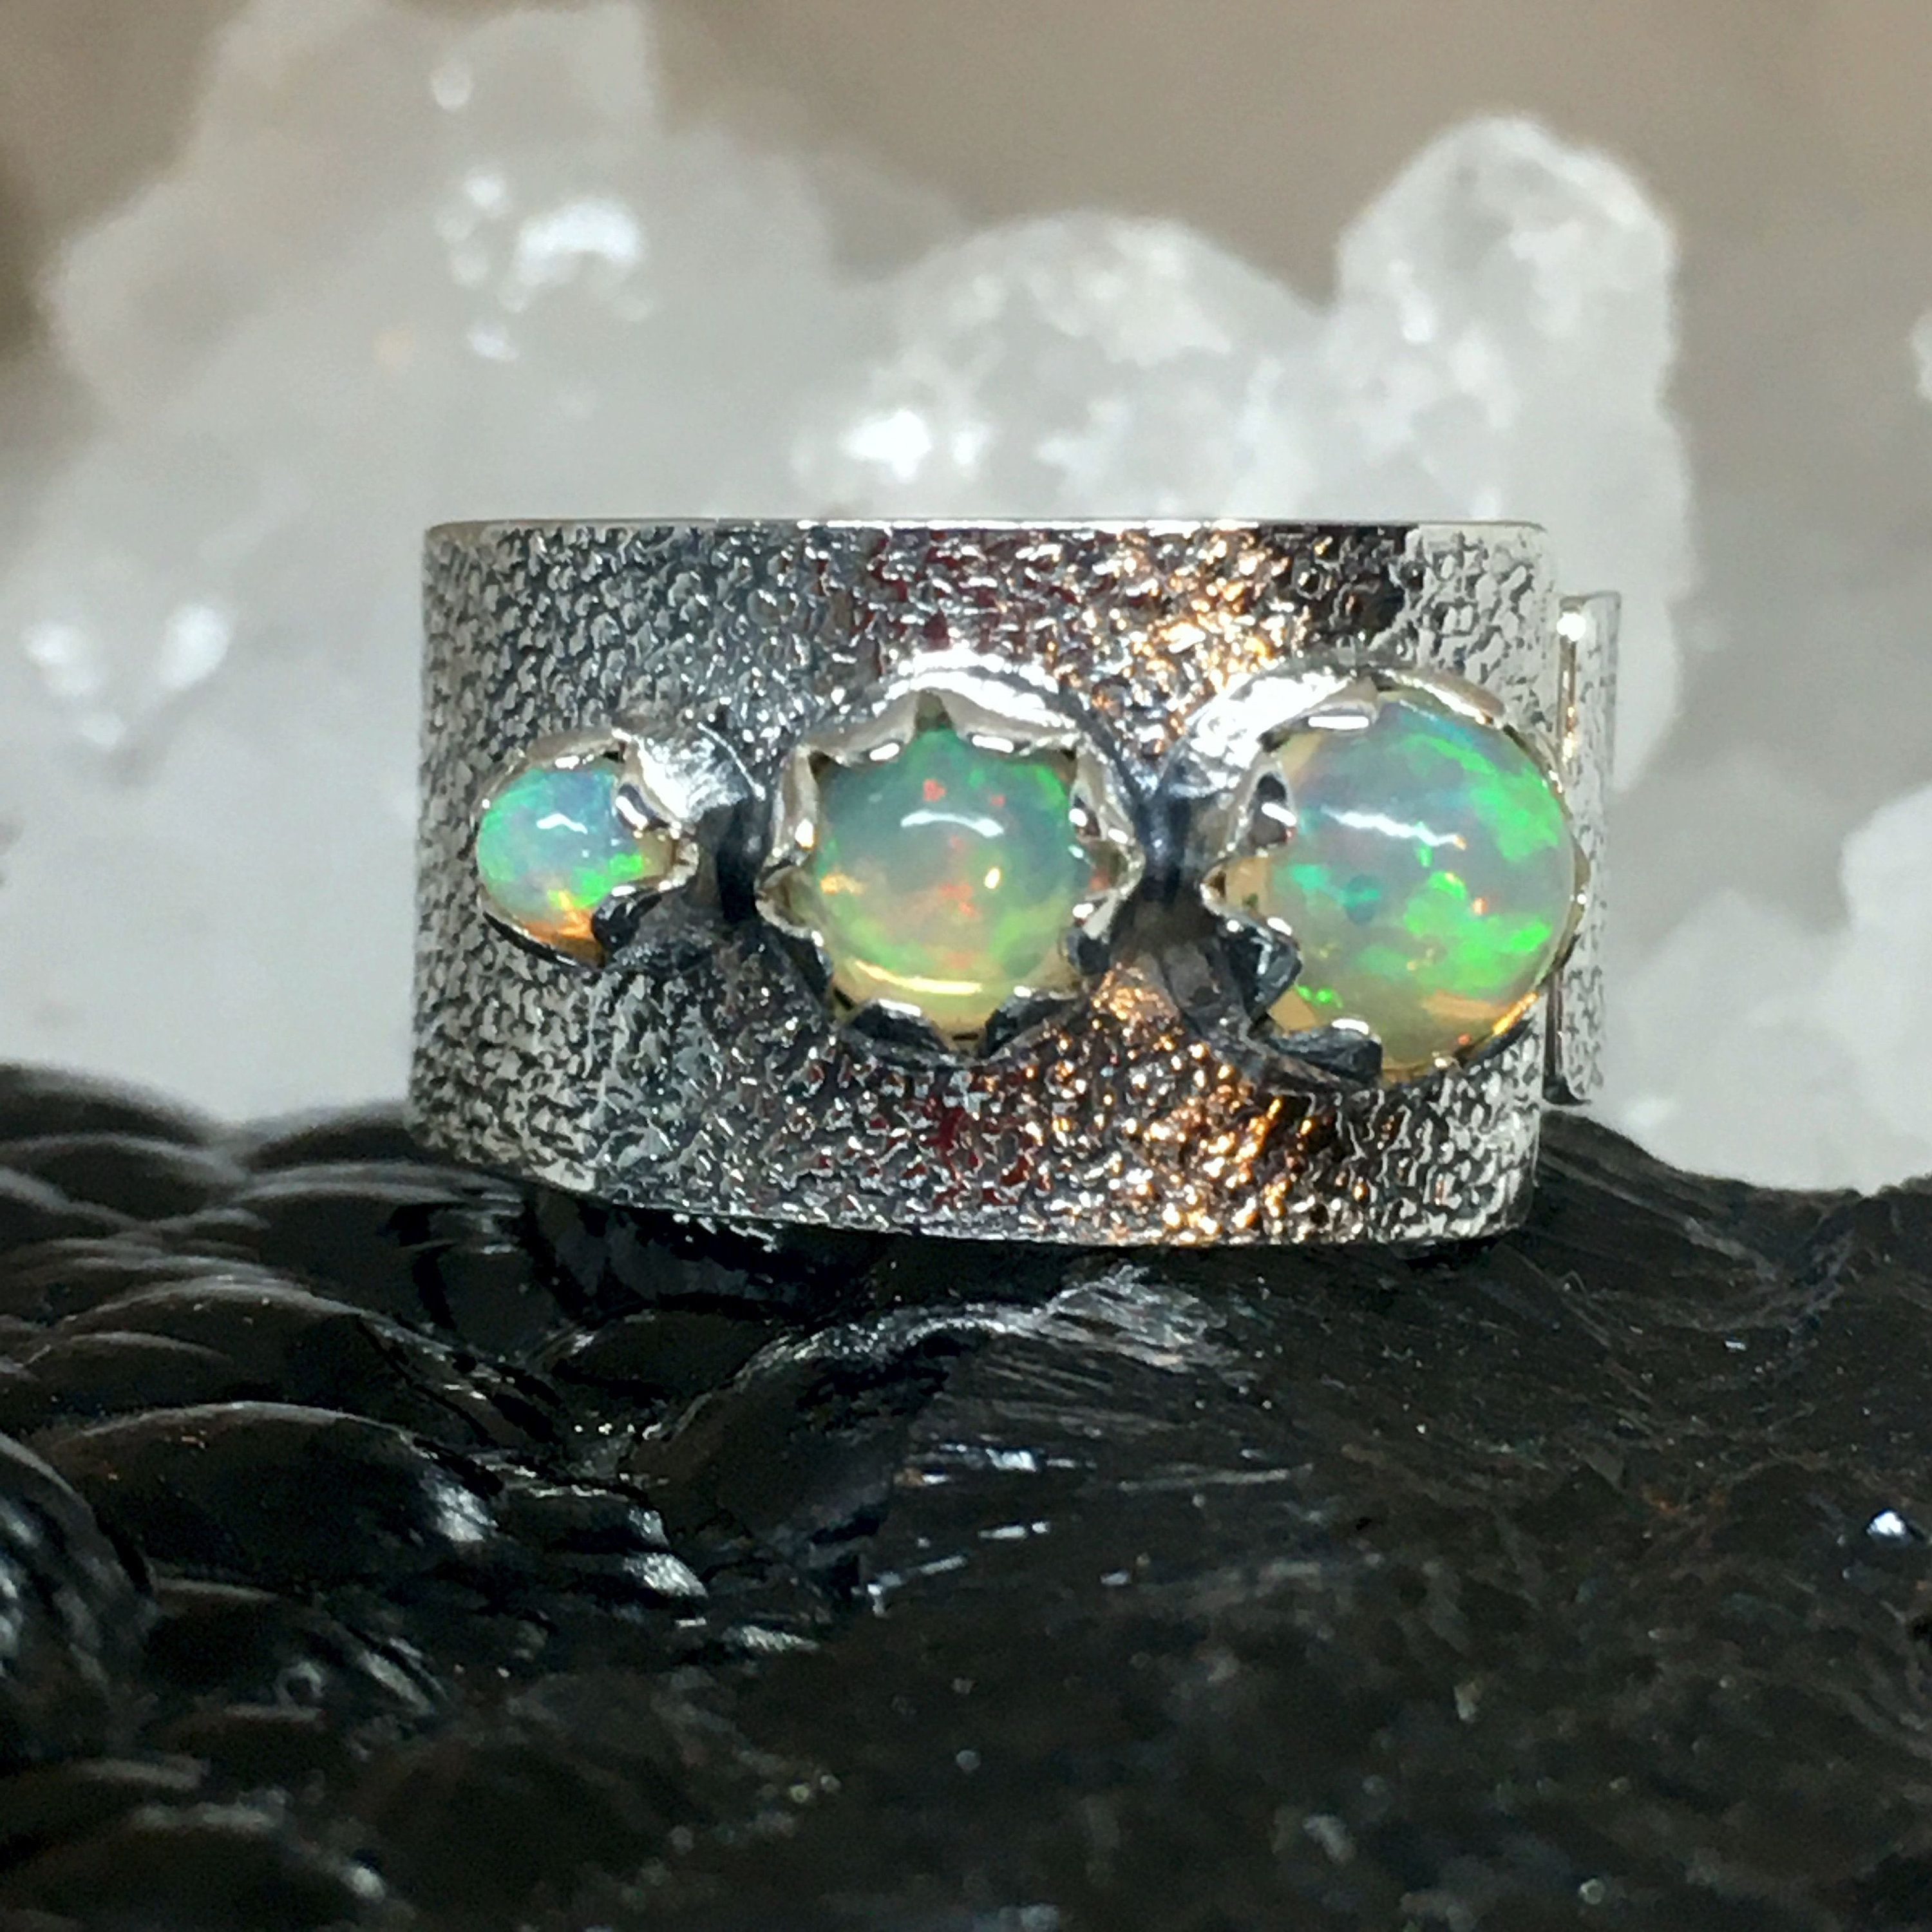 Unique Jewelry Opal Ring Designer Woman Ring, Ethiopian Solid Opals Opals Jewelry Hammered Ring Sterling Silver Ring Statement Ring